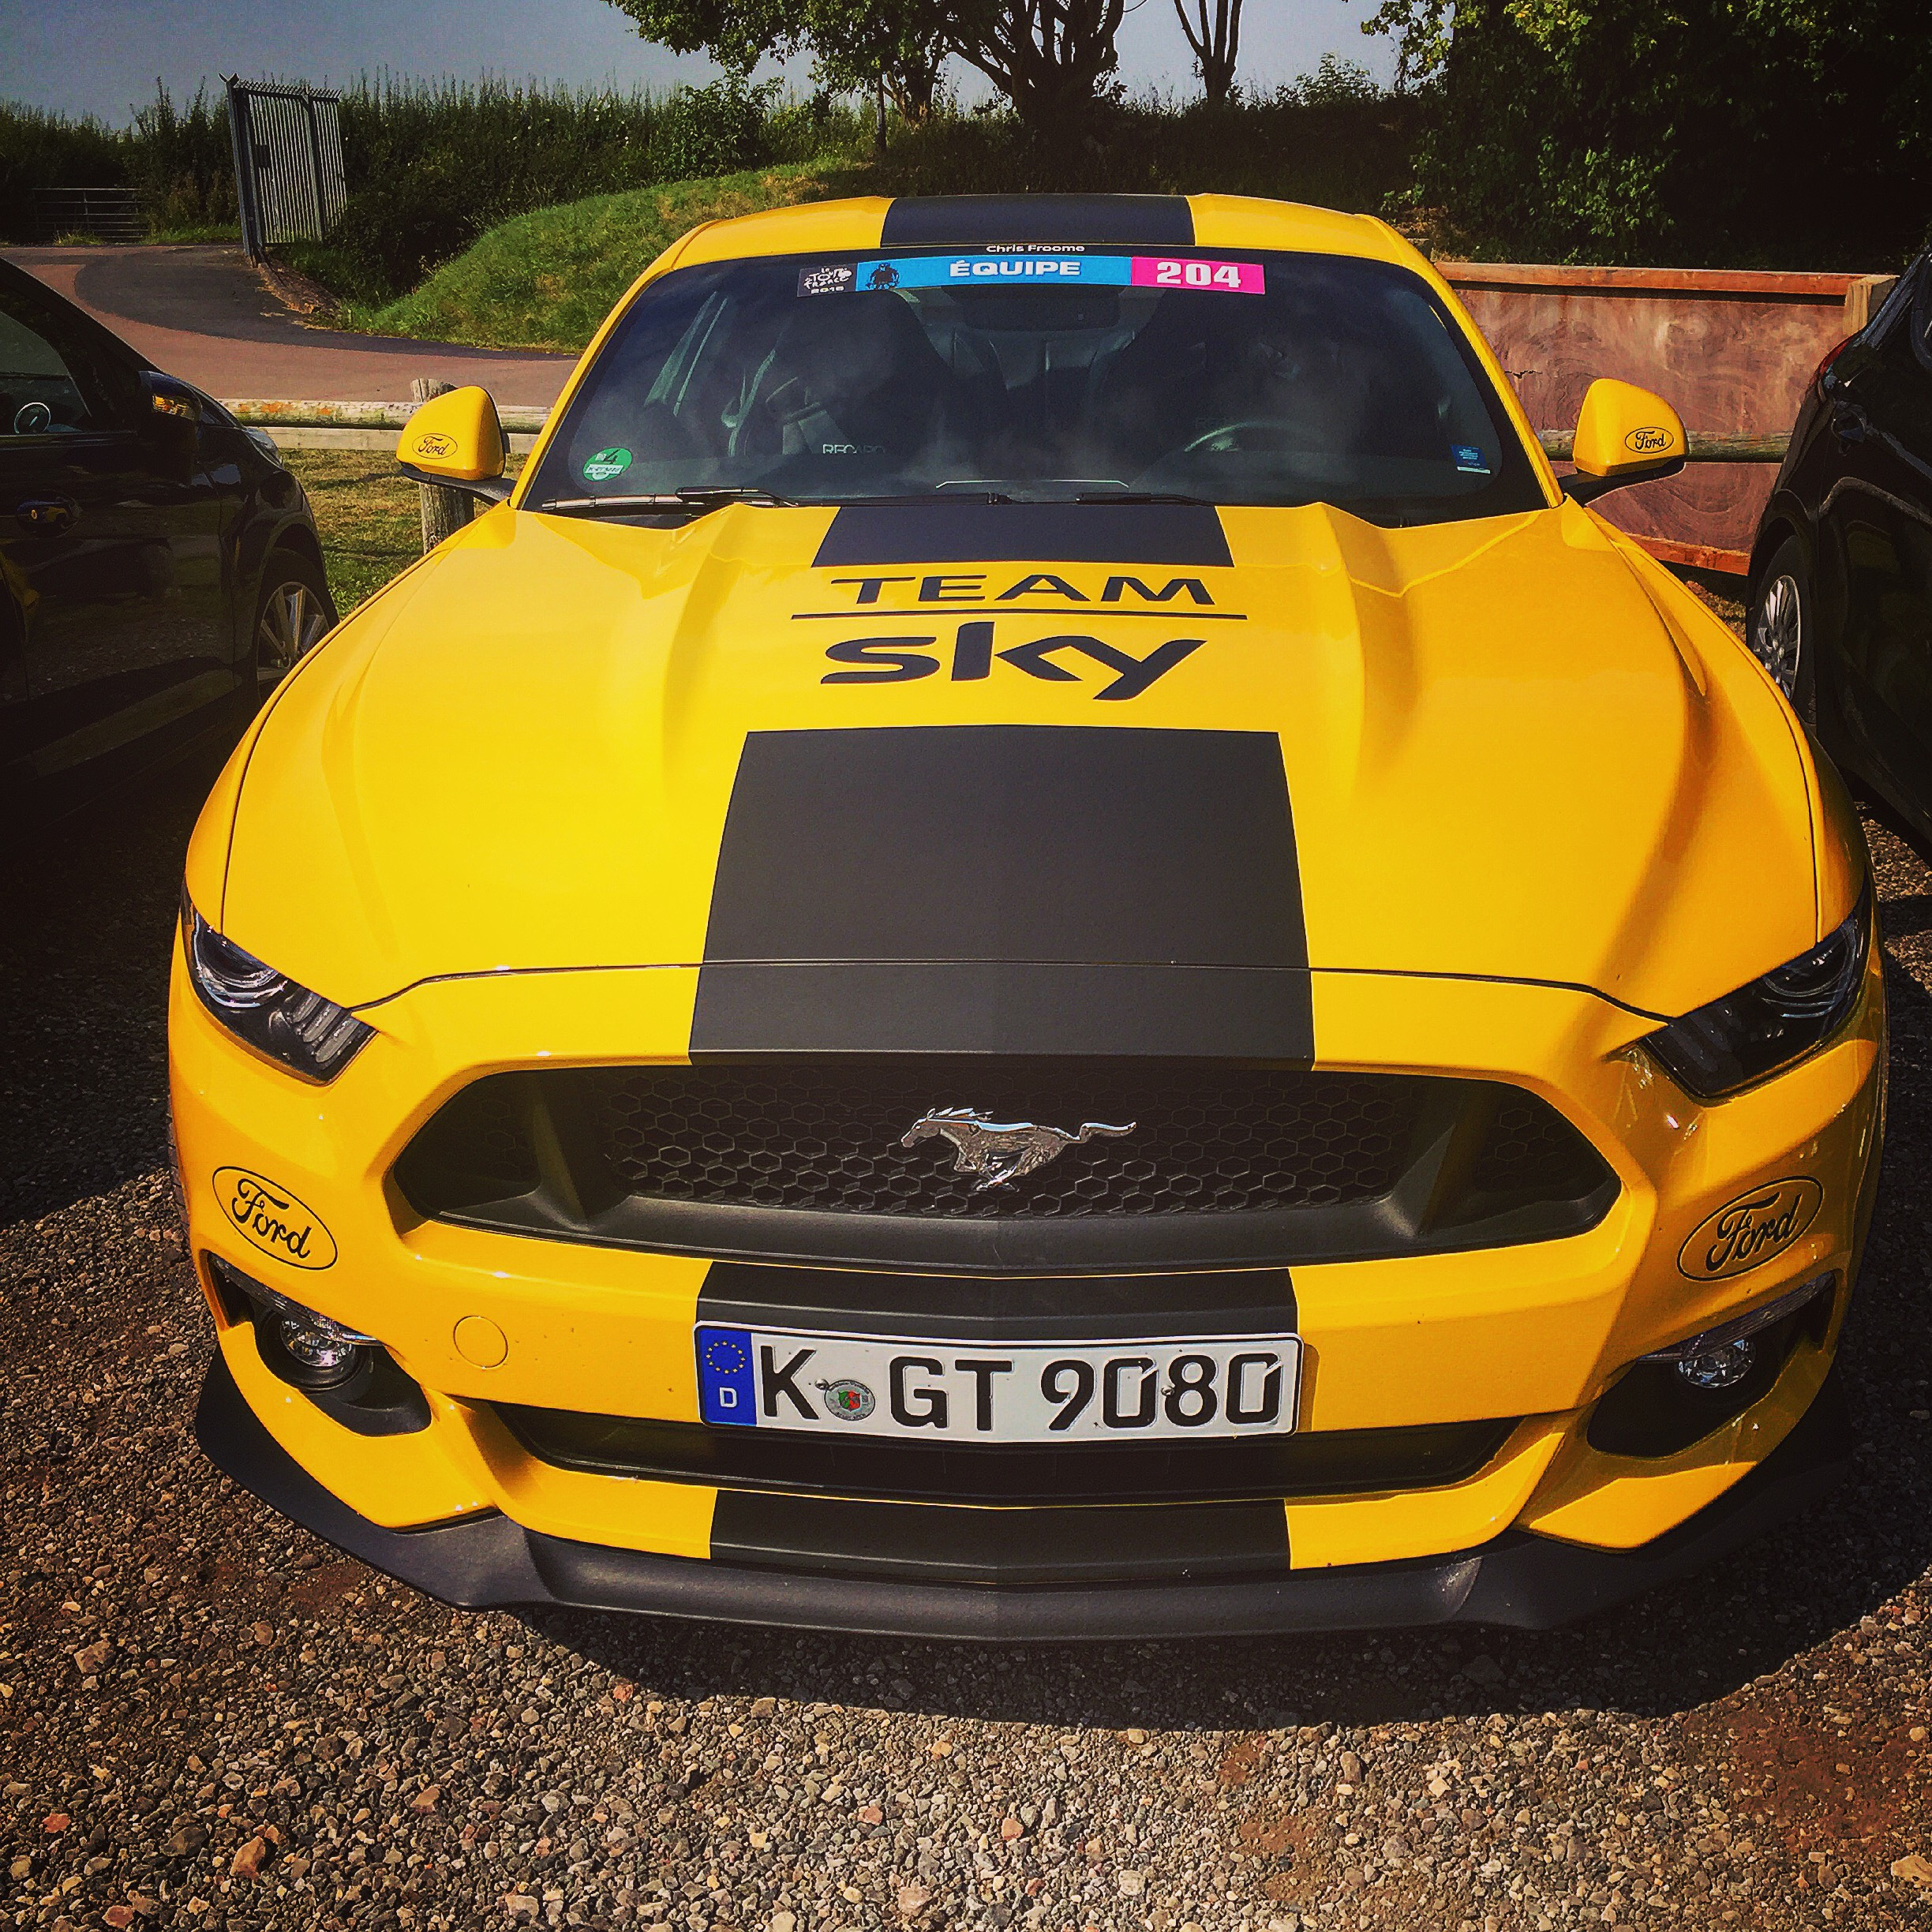 Team sky ford mustang